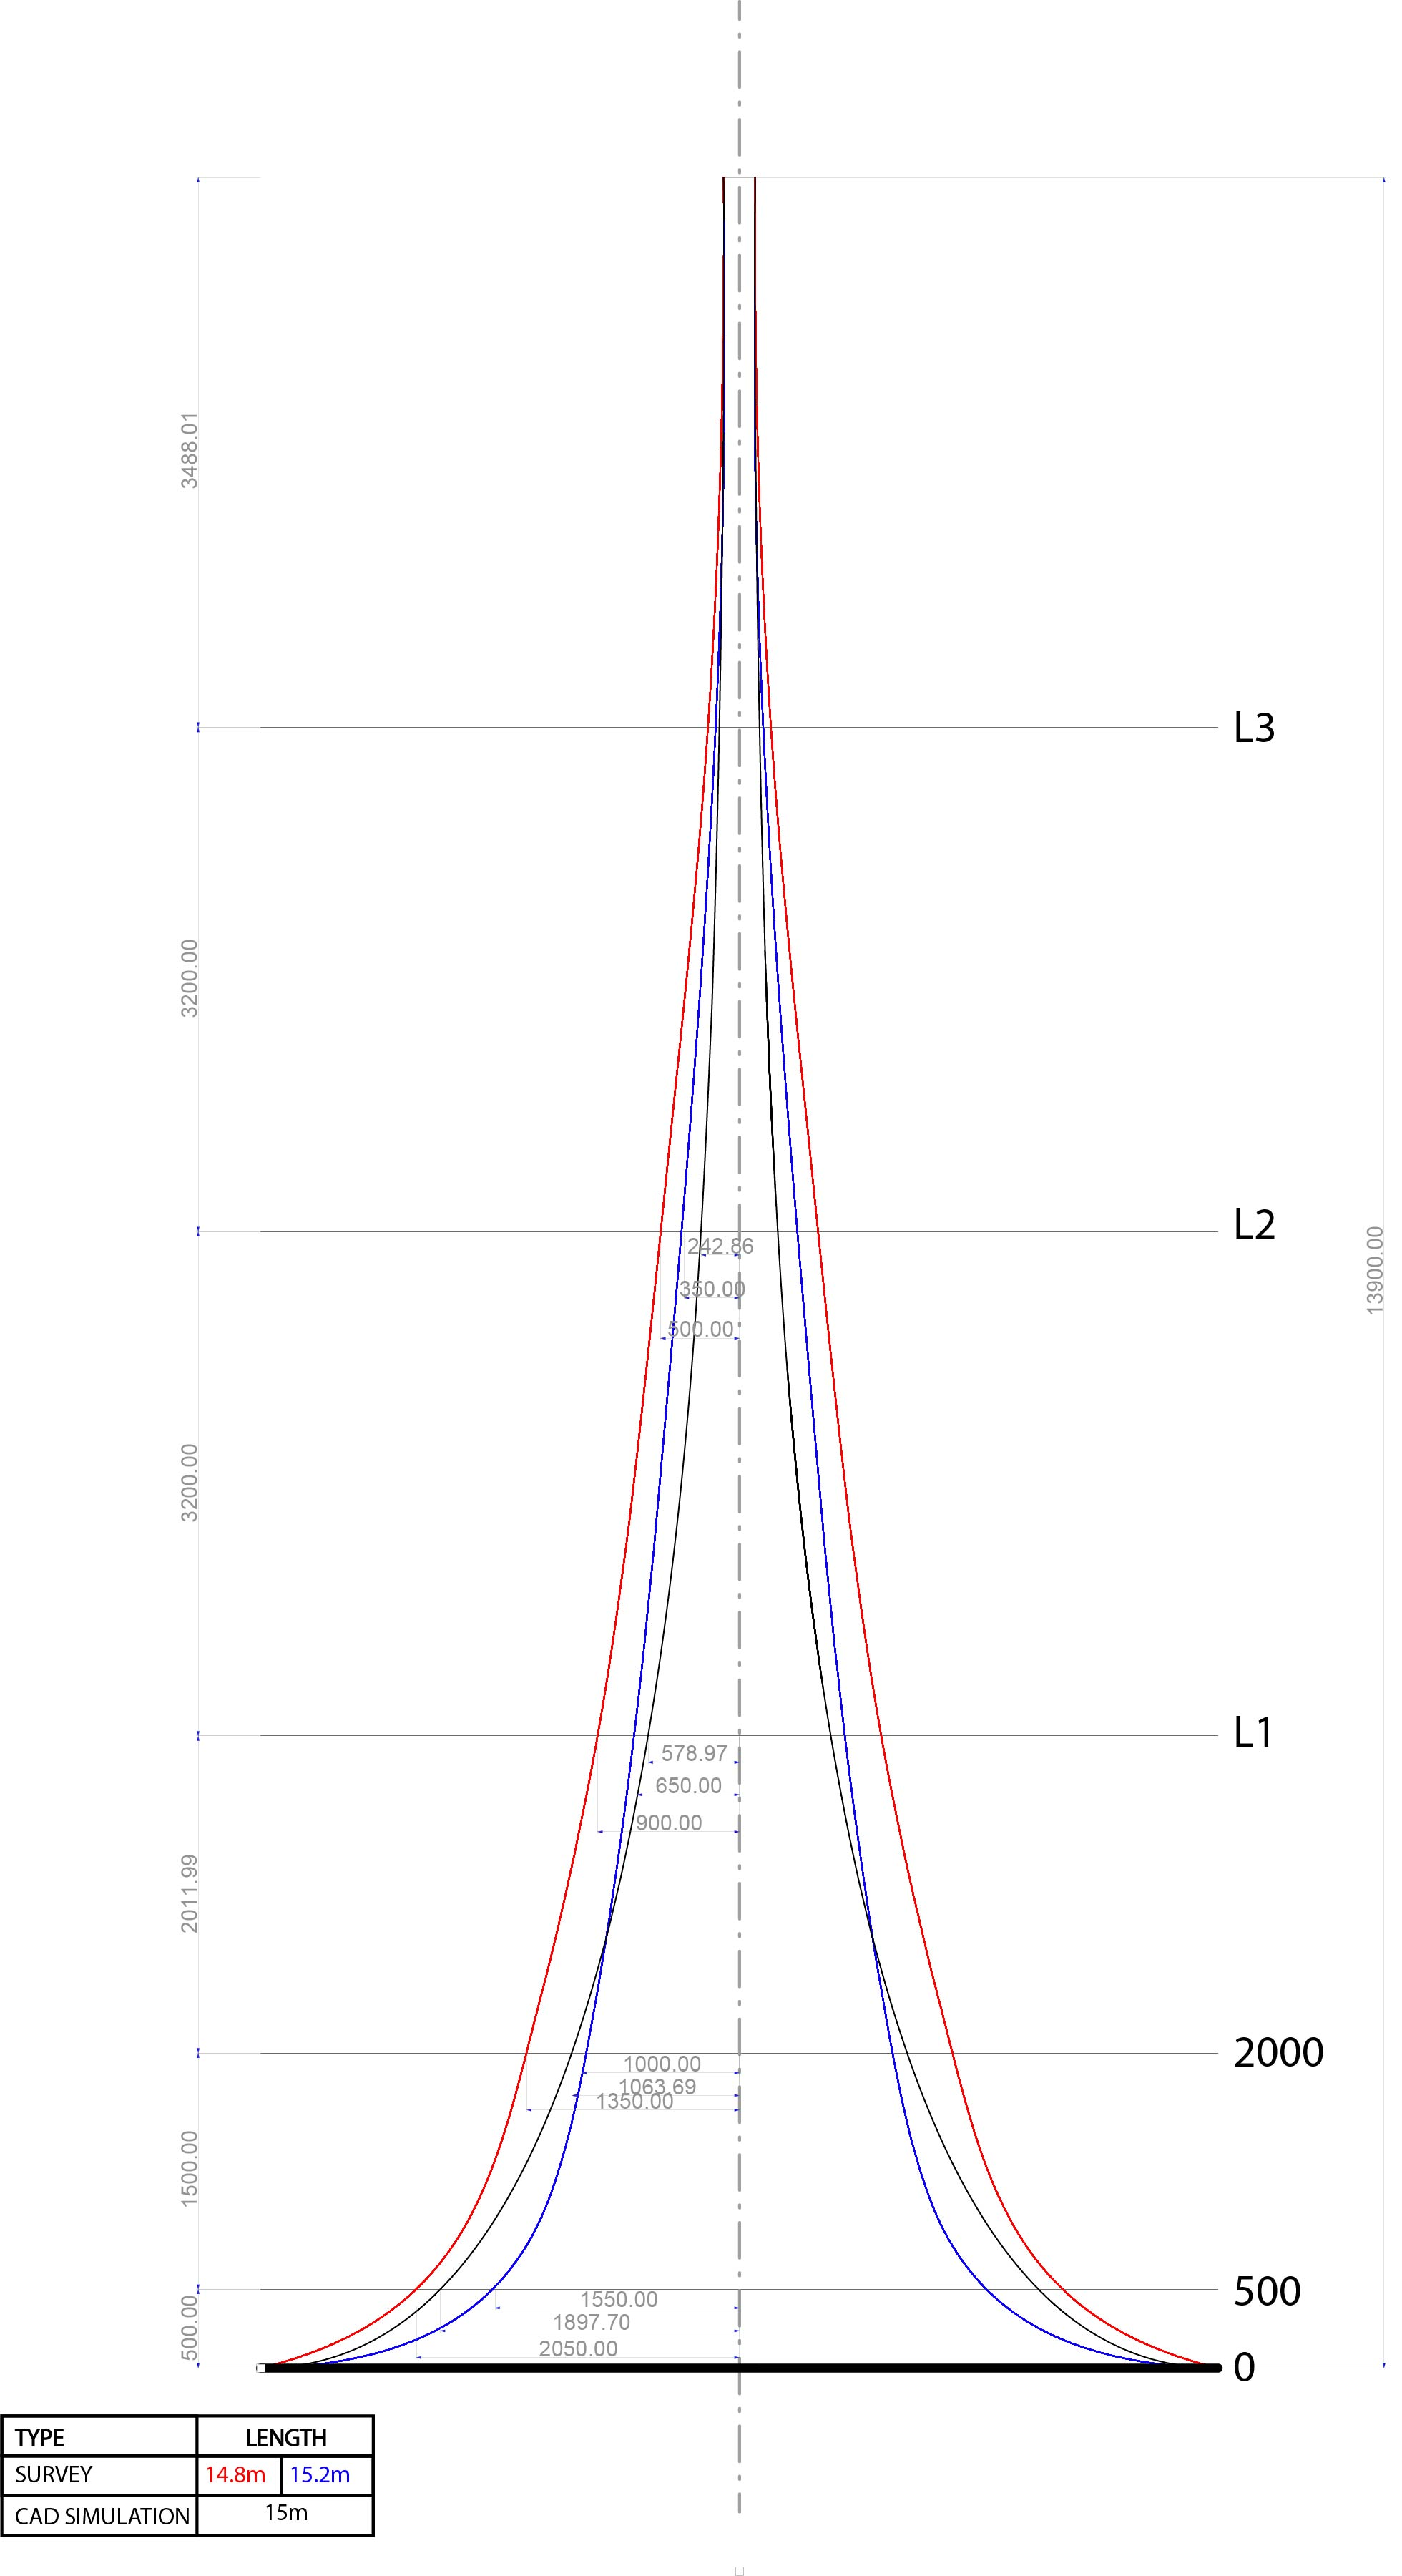 Catenary Curve simulation compared to onsite testing